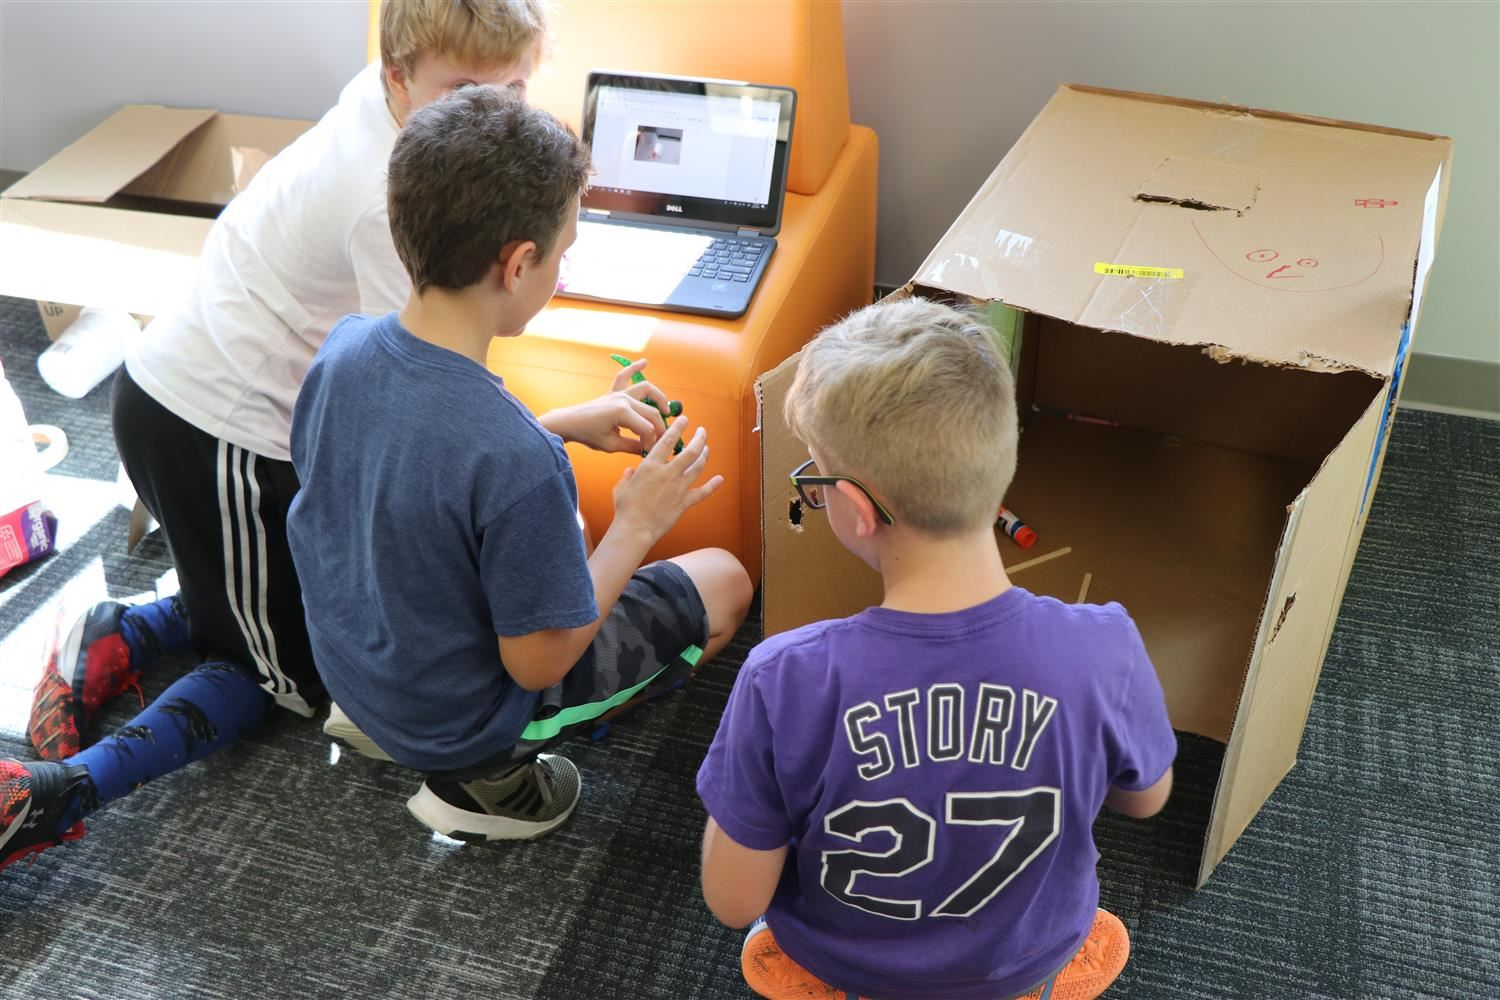 A team of three boys park on the floor in the library to colaborate on their cardboard project.